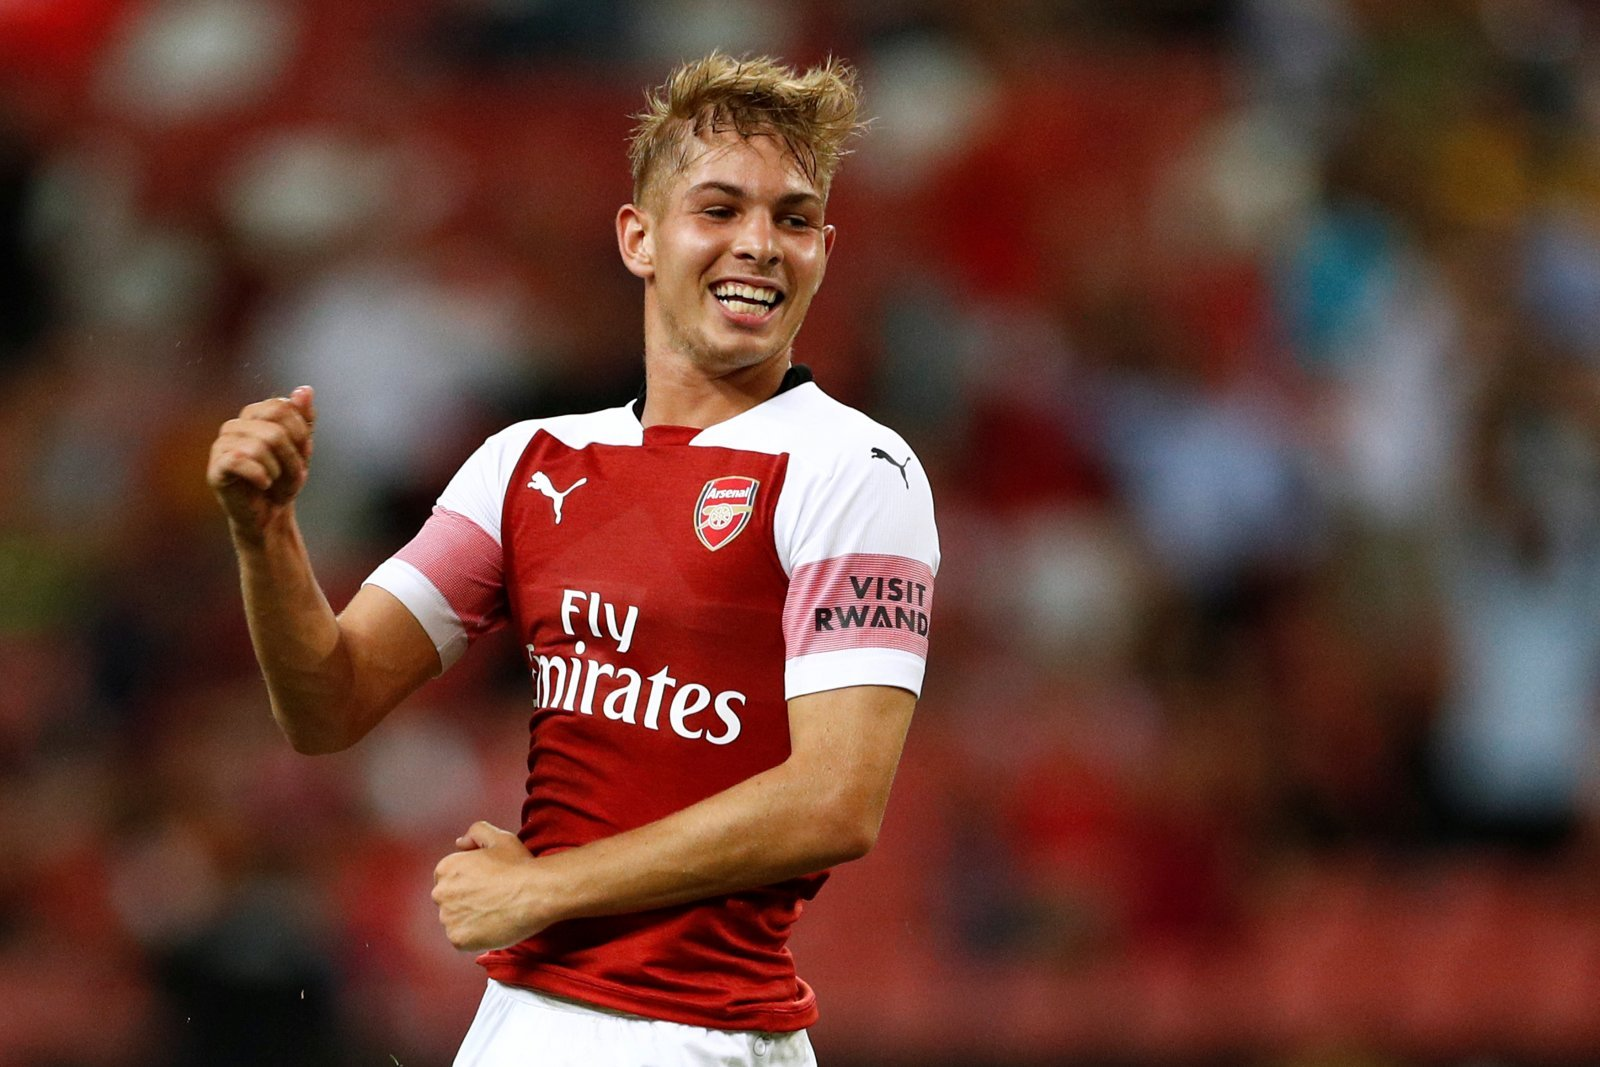 Arsenal shouldn't fear losing Ramsey as they already have his replacement